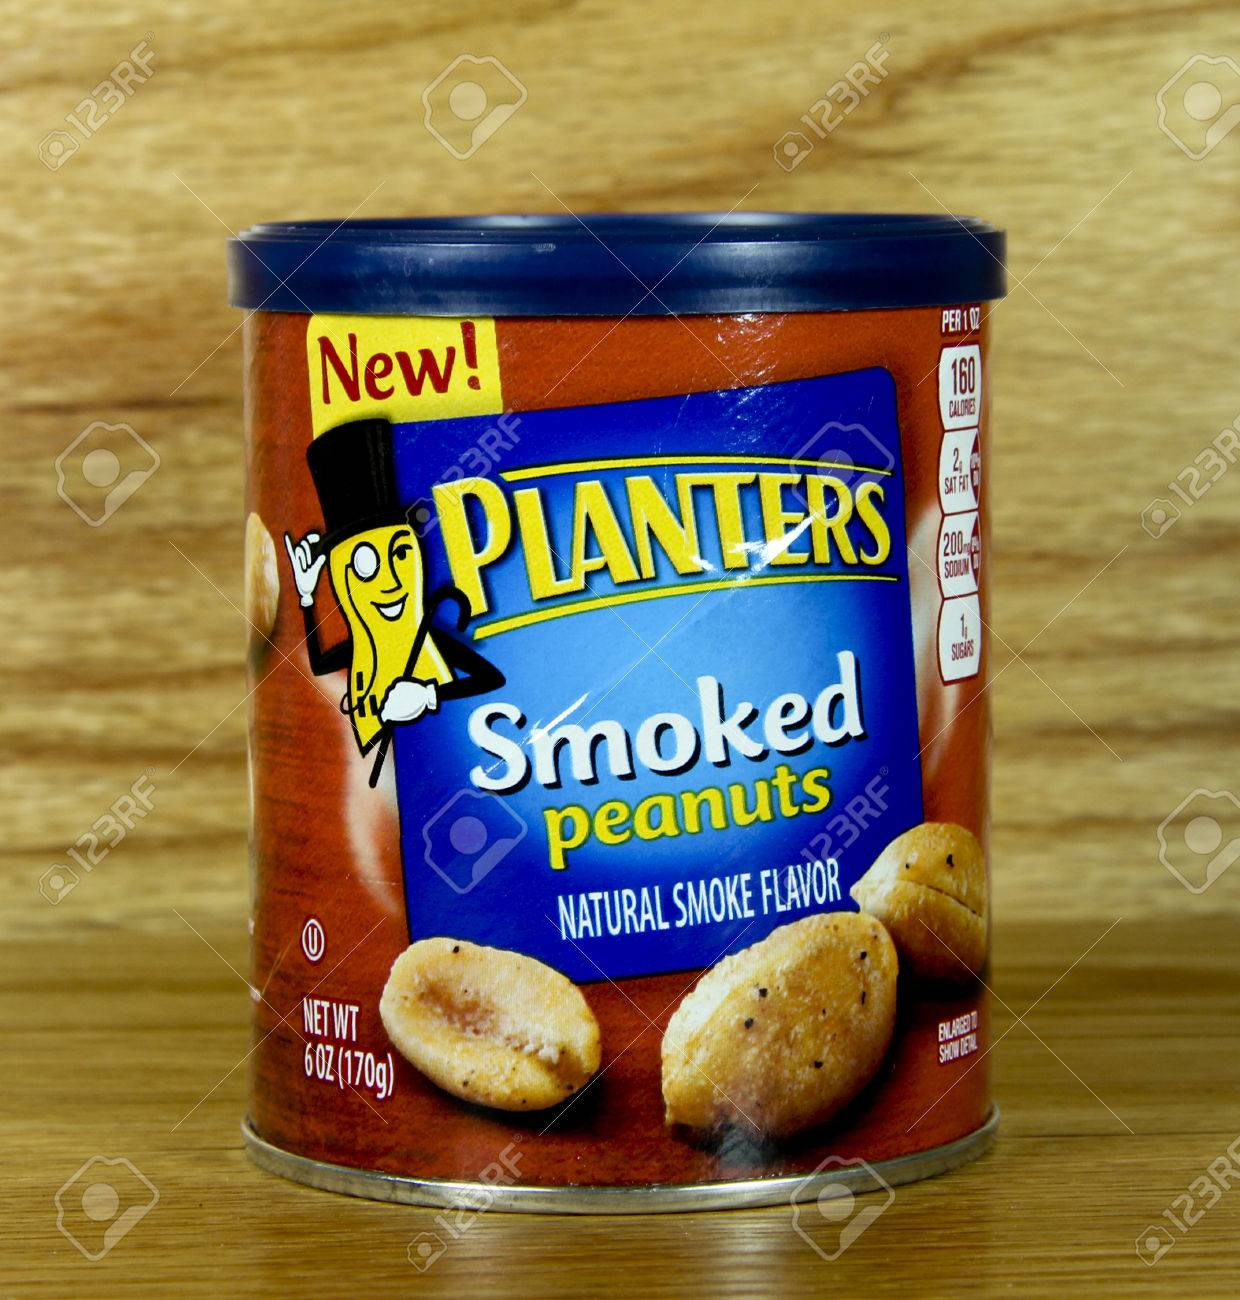 SPENCER , WISCONSIN June 22 , 2014: Can Of Planters Smoked Peanuts on smoked pineapple, smoked pork, smoked turkey, smoked tuna, smoked salt, smoked beef, smoked onions, smoked nuts, smoked bacon, smoked avocado, smoked eggs, smoked tomato, smoked almonds,